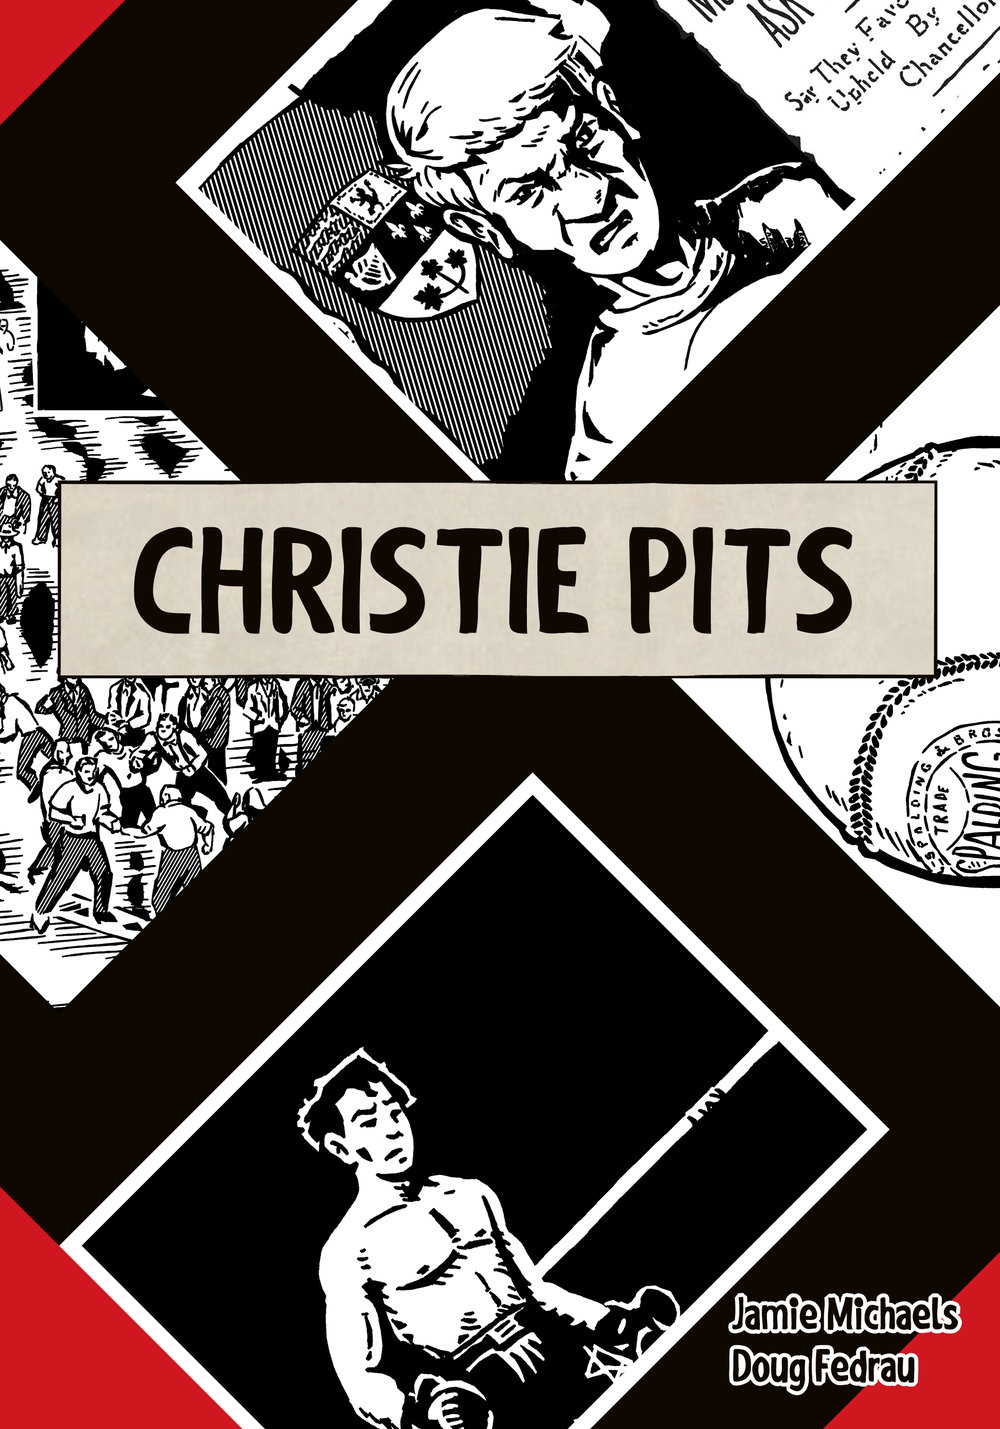 Christie-pits-front-cover(1).jpg